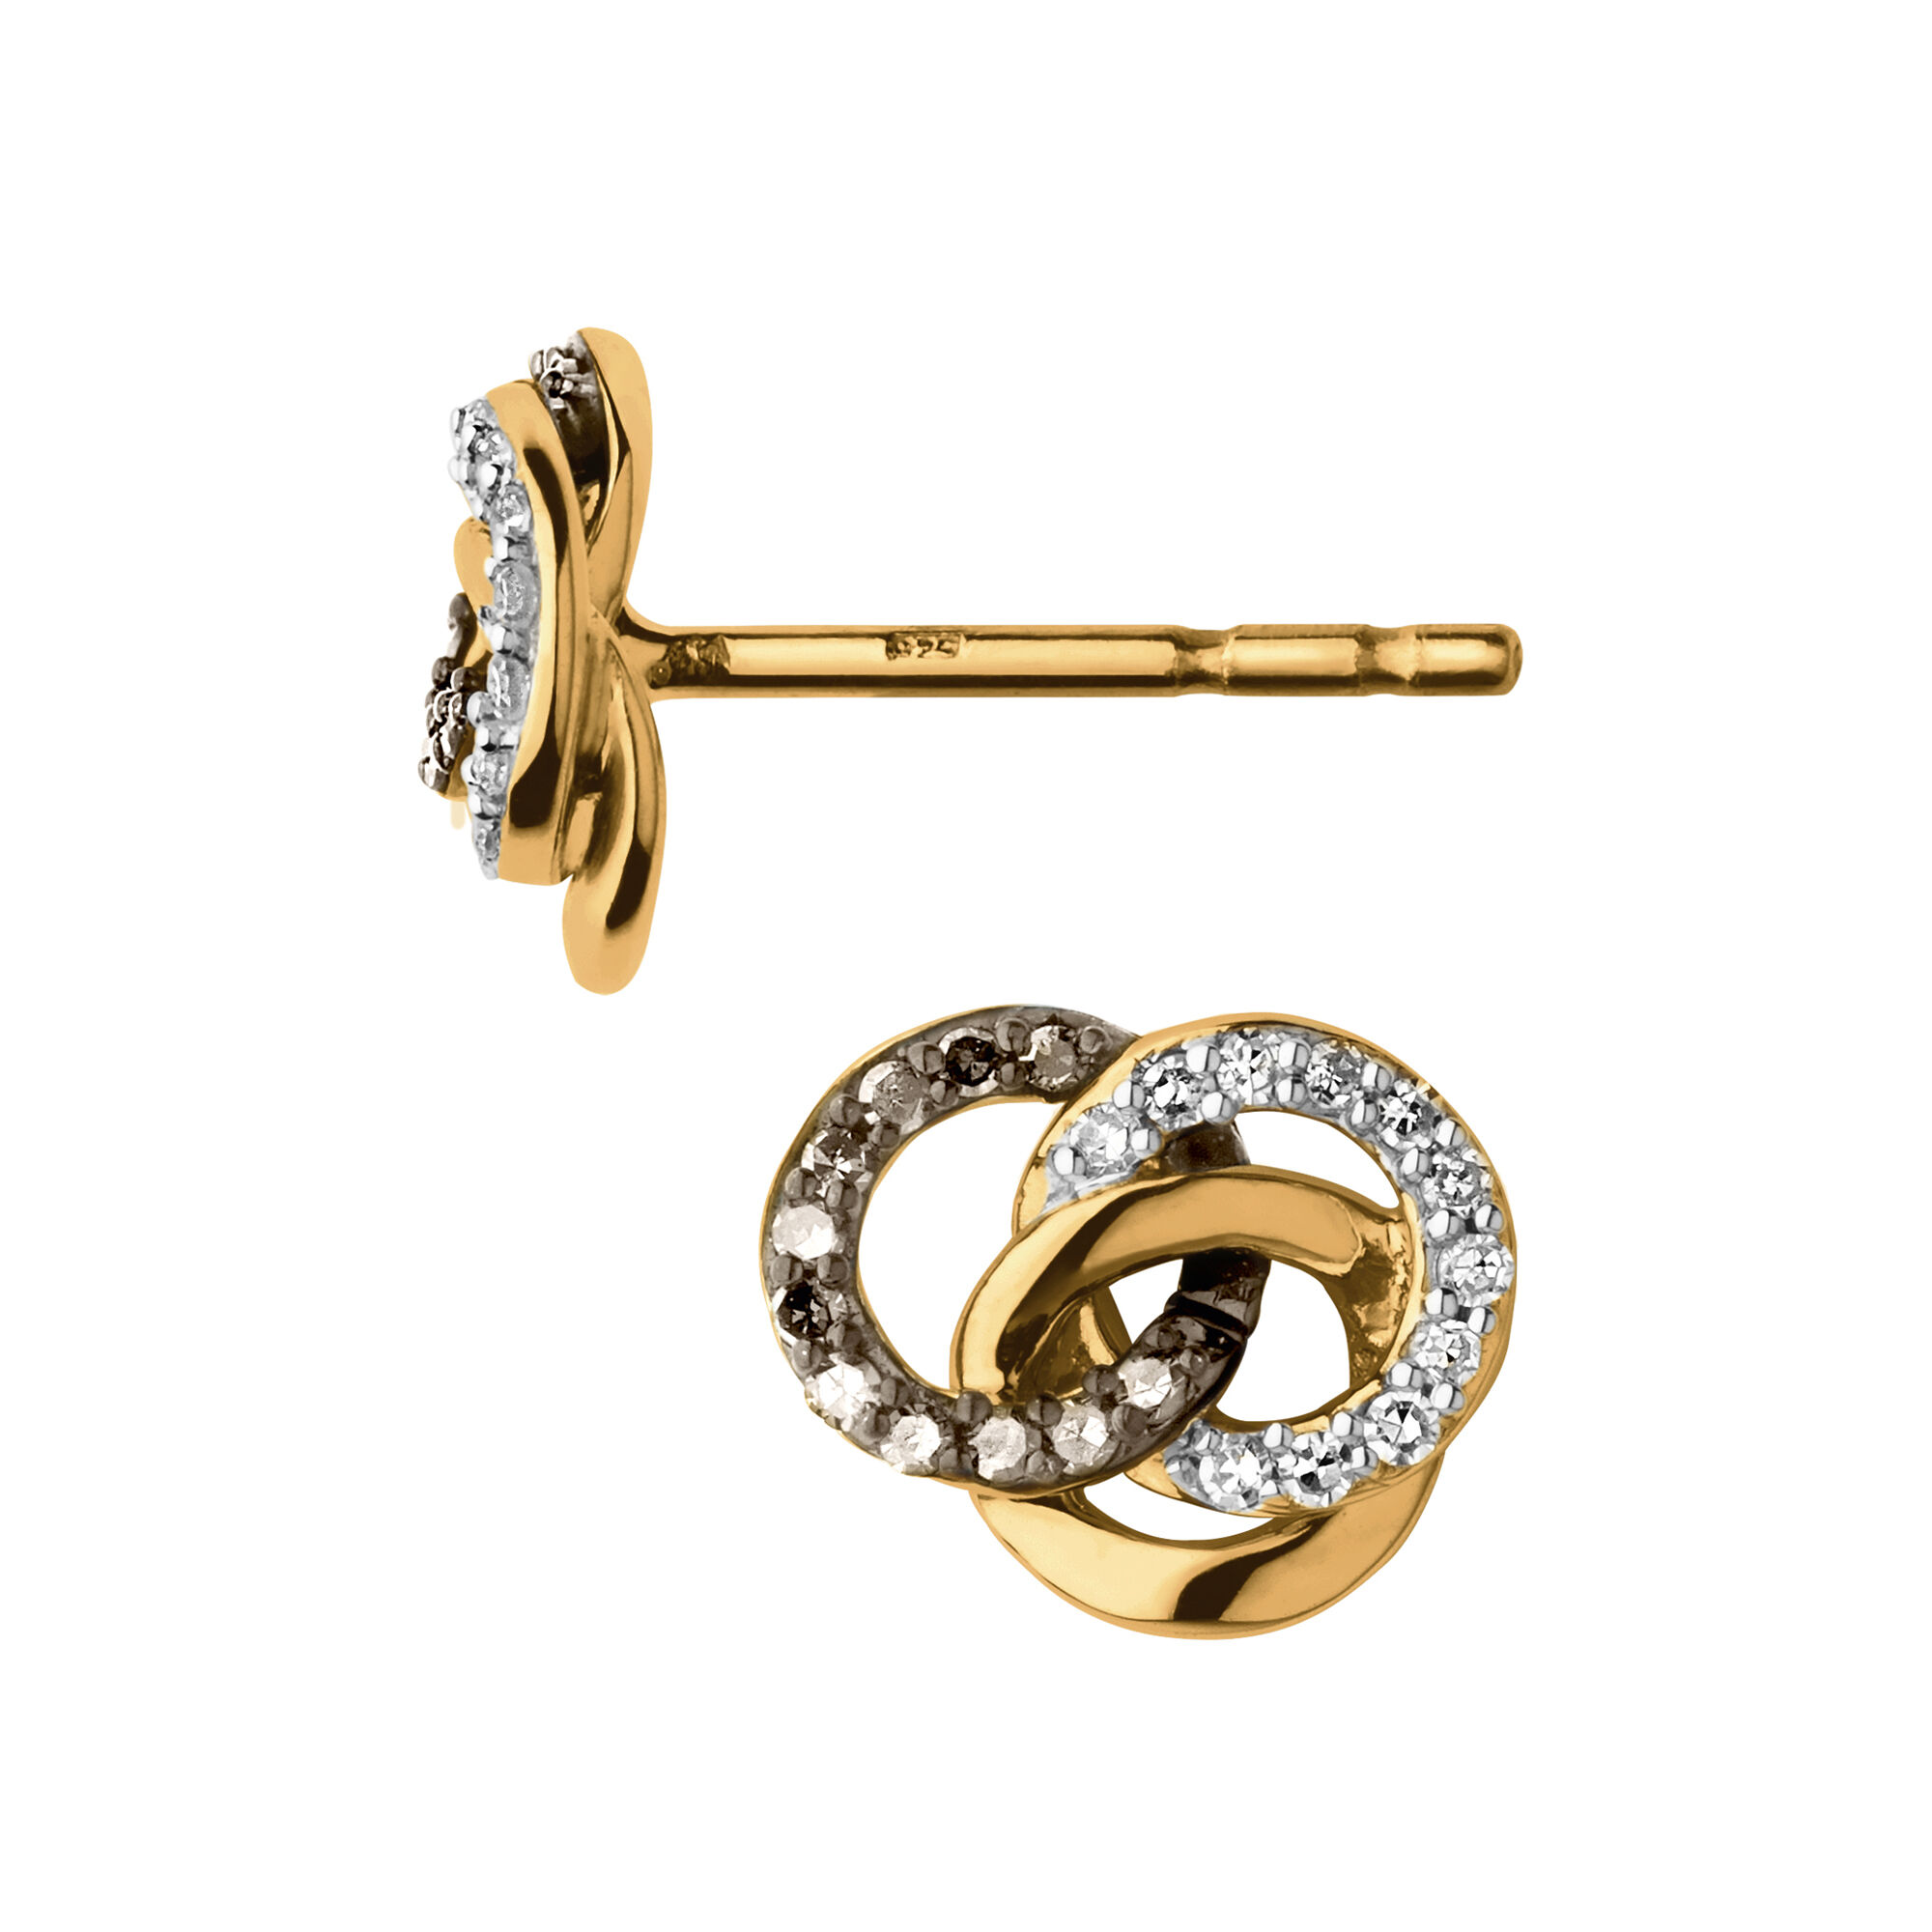 night lyst champagne earrings diamond gallery product yellow gold quartz stud black kalan suzanne normal jewelry